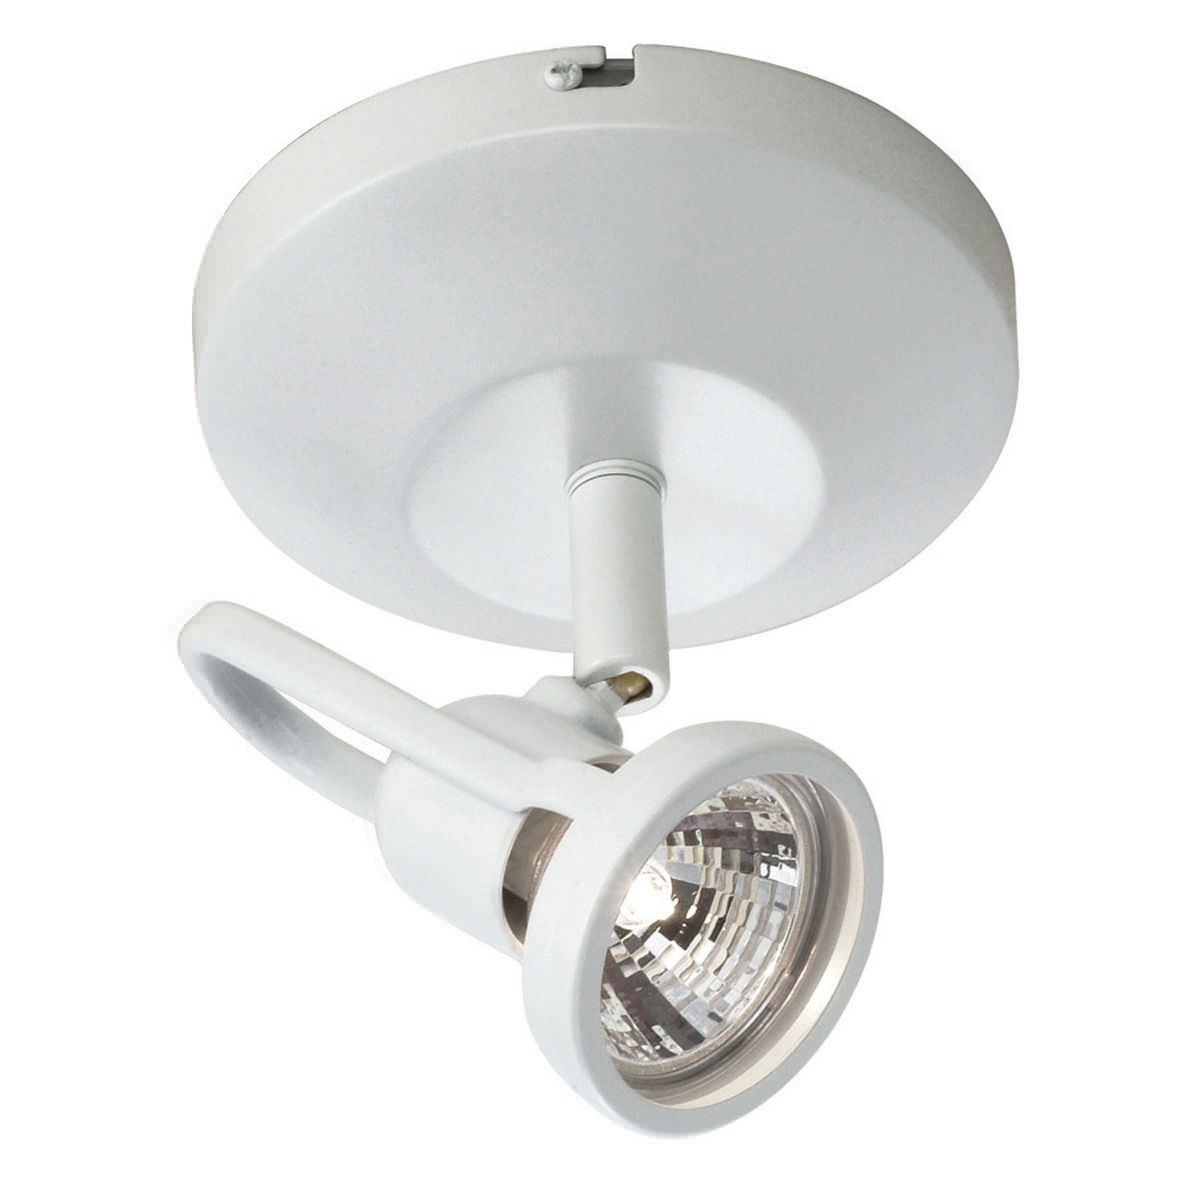 Ceiling Mounted Spotlight Indoor Halogen Round Me 826